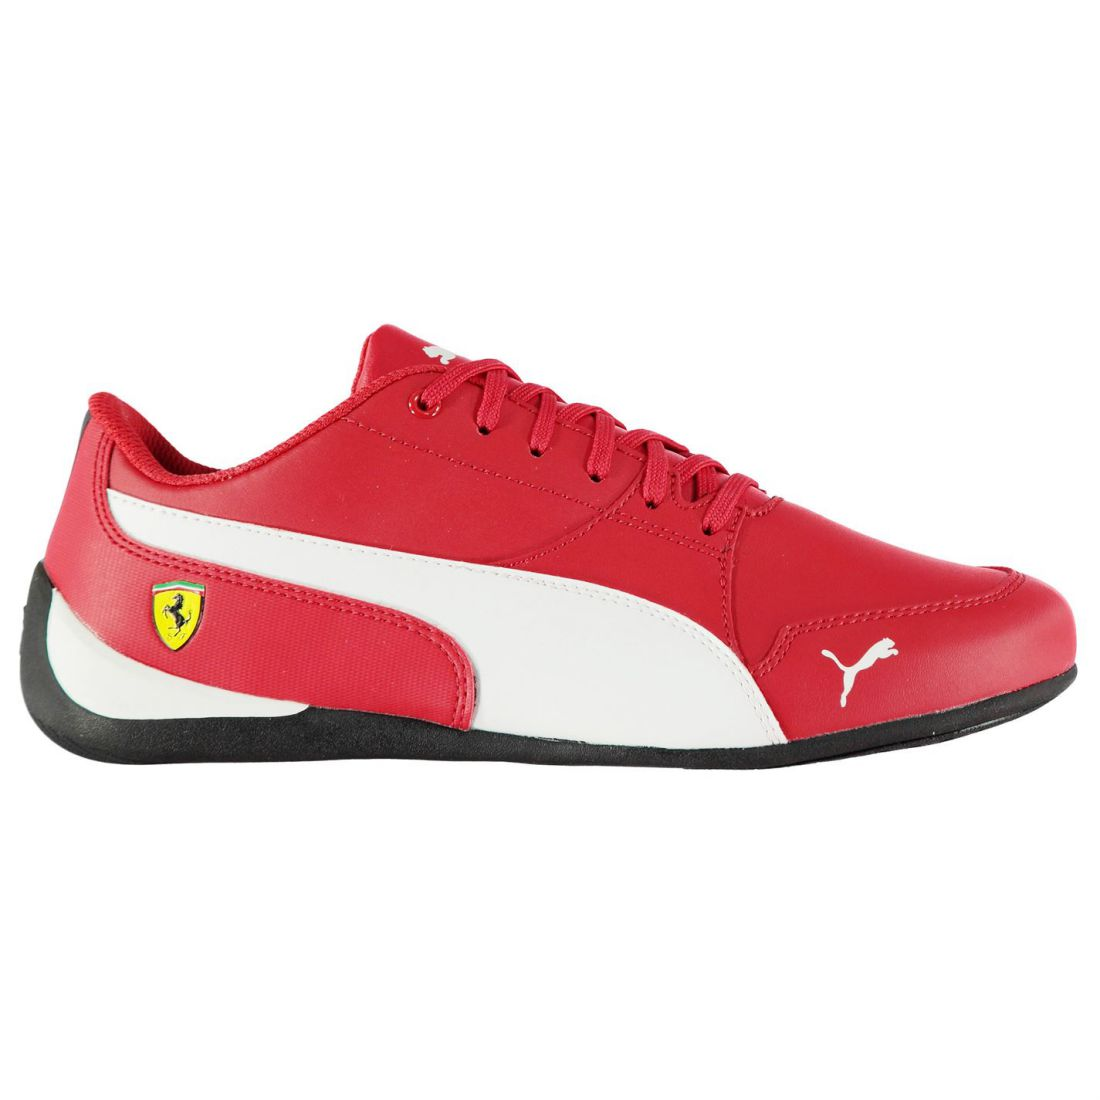 7c13e2c3f20 PUMA SF Drift Cat 7 Jr Shoes Ferrari Boy Baby Sports Time Red 37 for ...